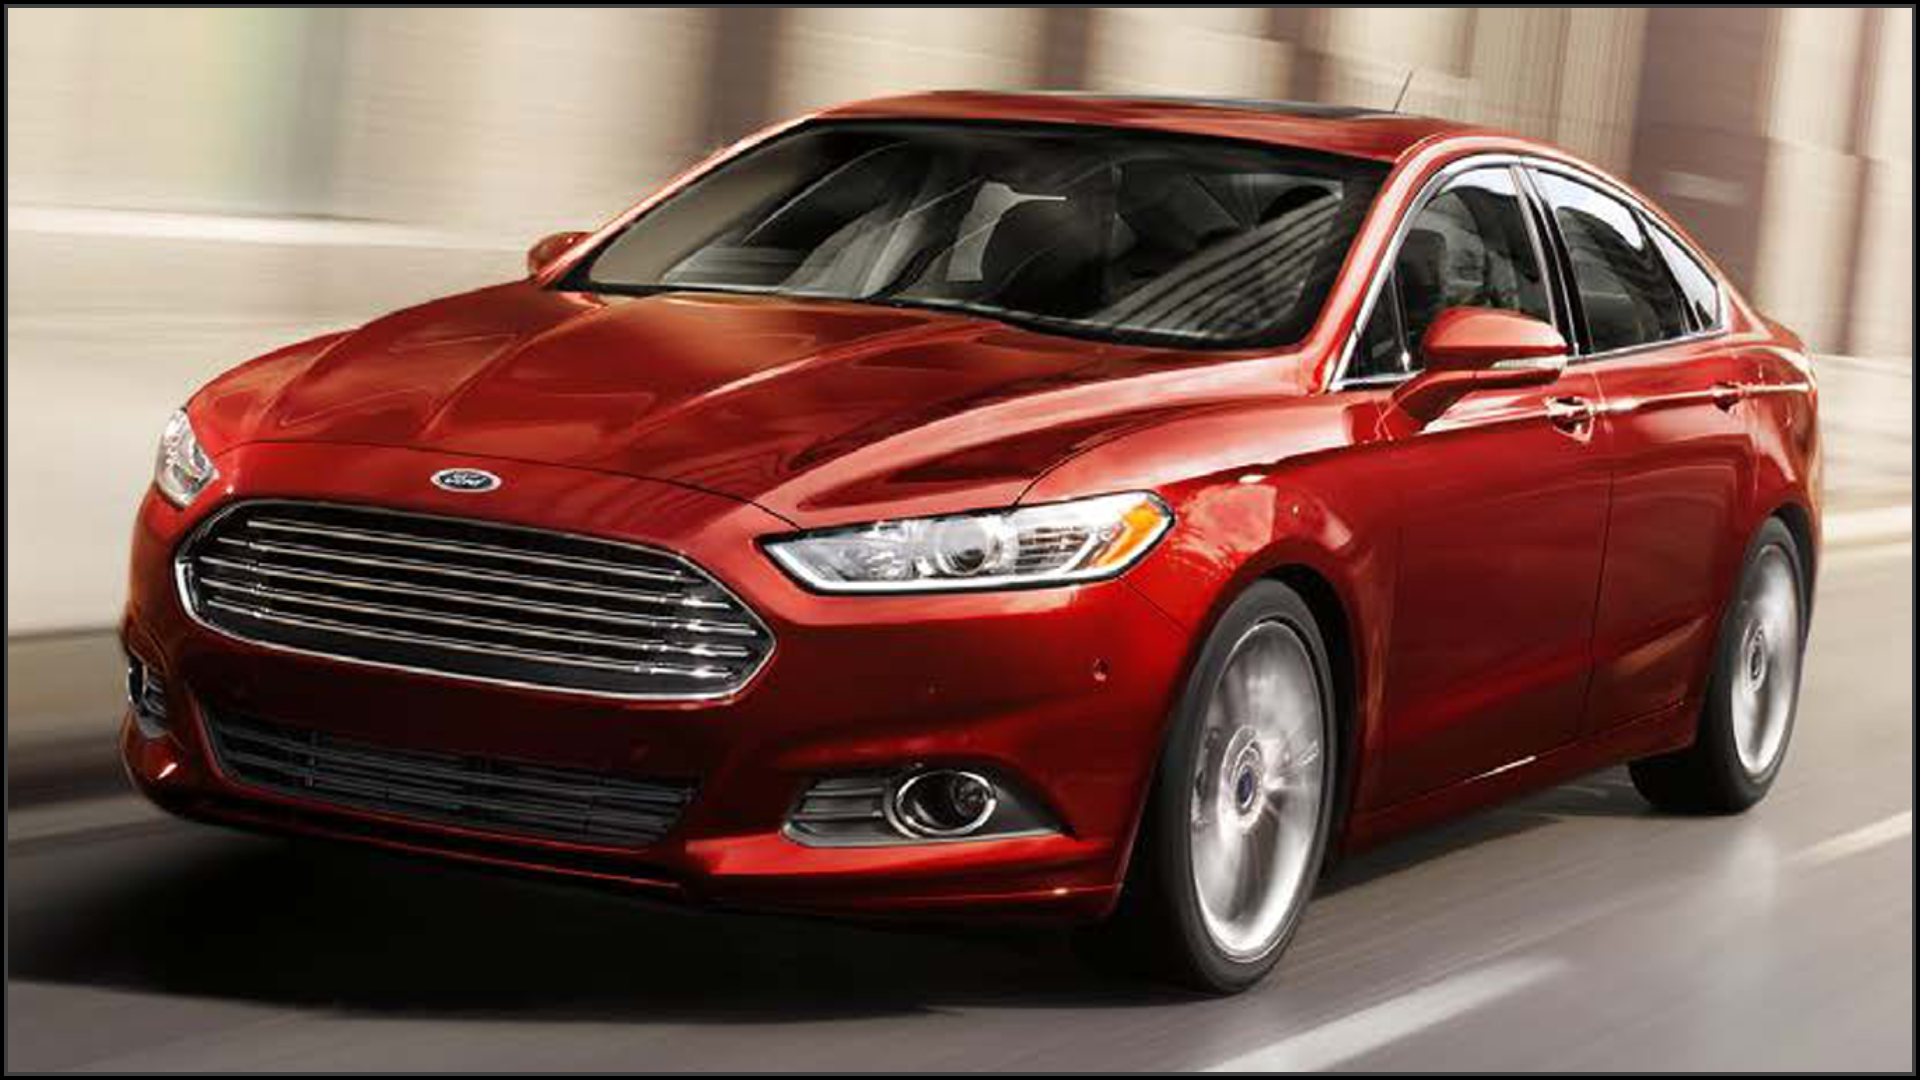 I Love This Car Especially In This Color Sunset 2014 Ford